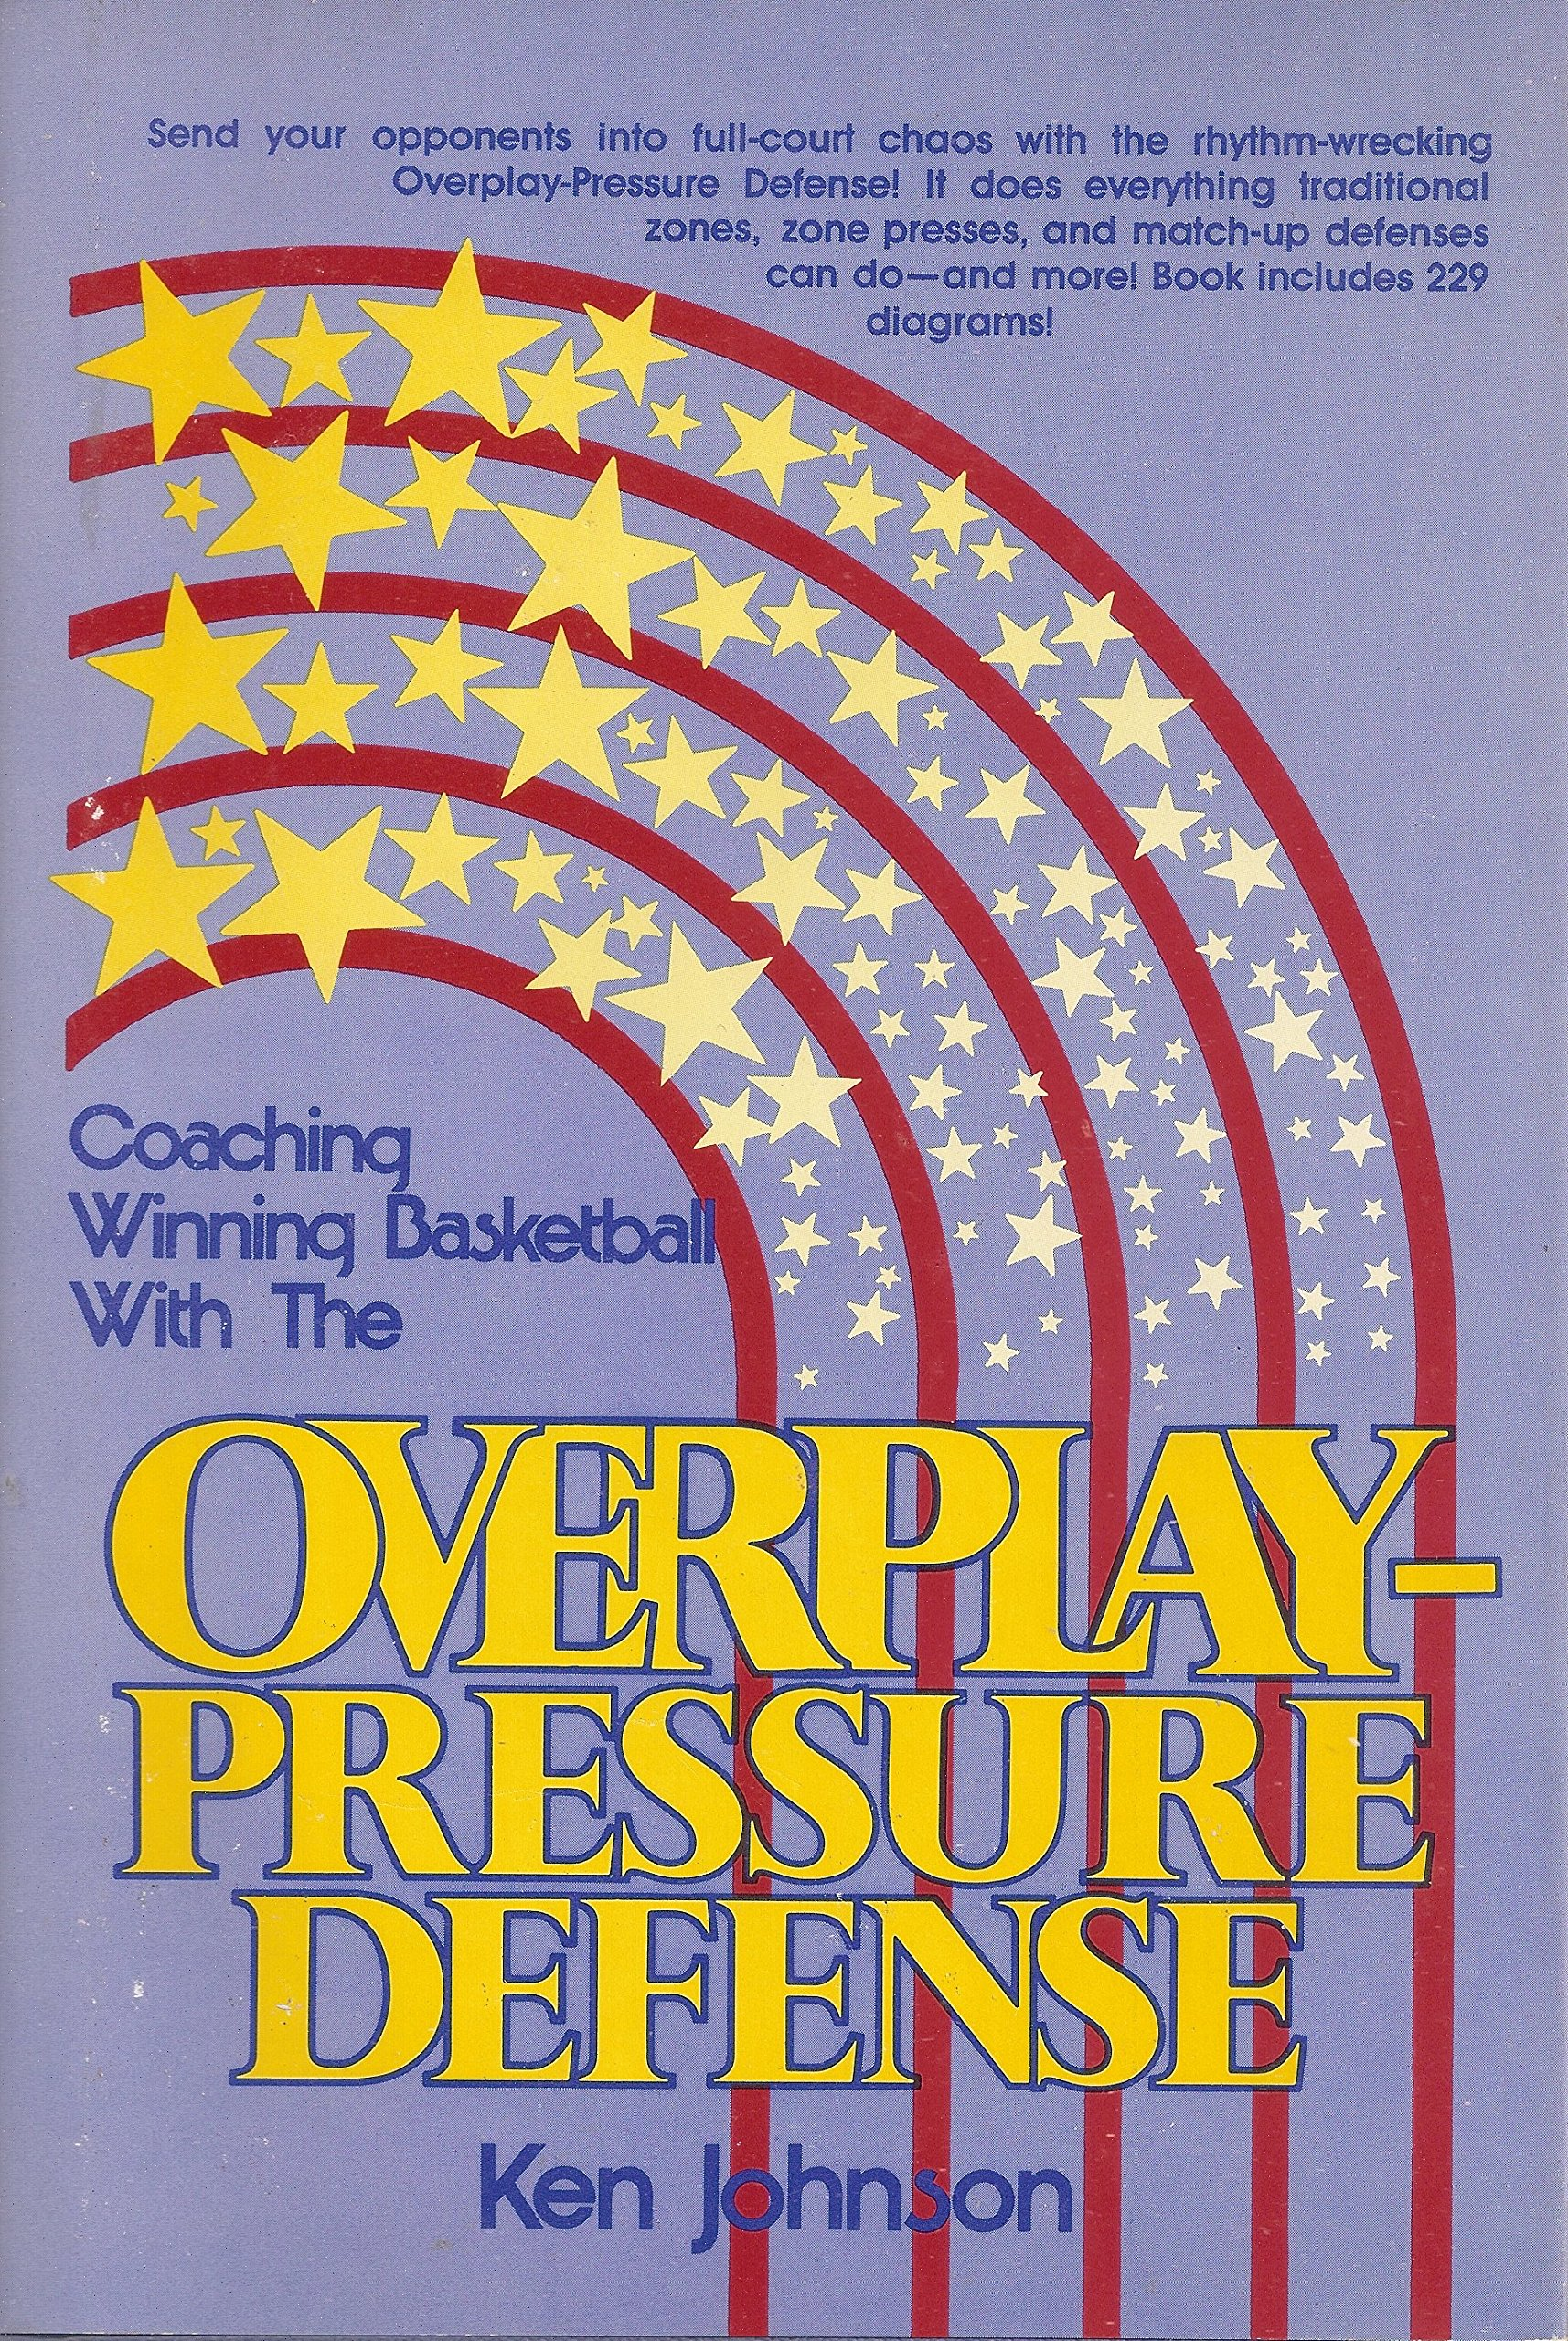 Coaching Winning Basketball With Overplay Pressure